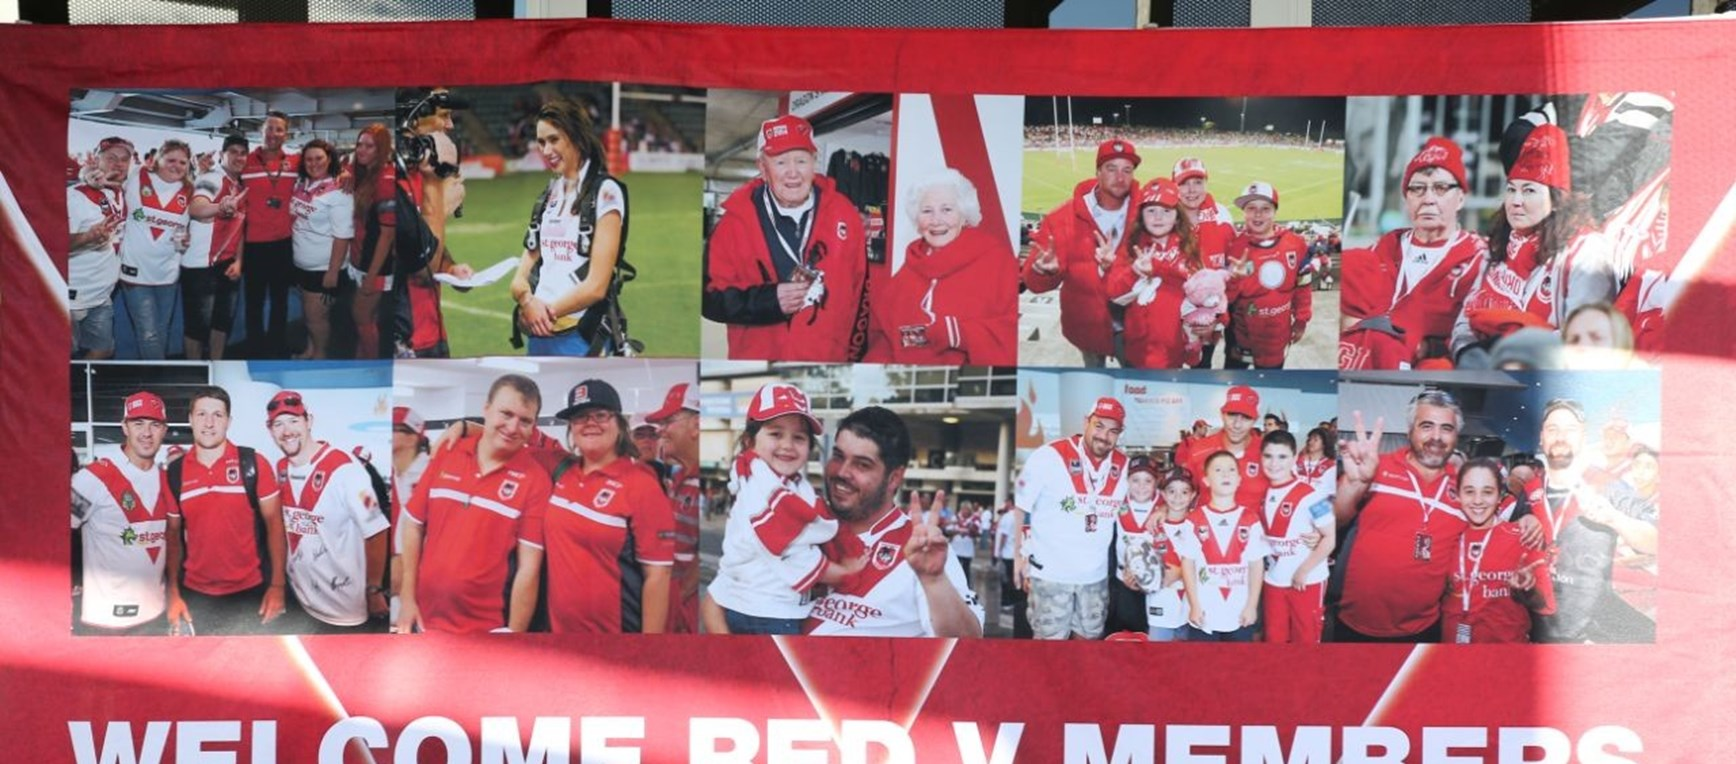 Thanks To Our Red V Members!